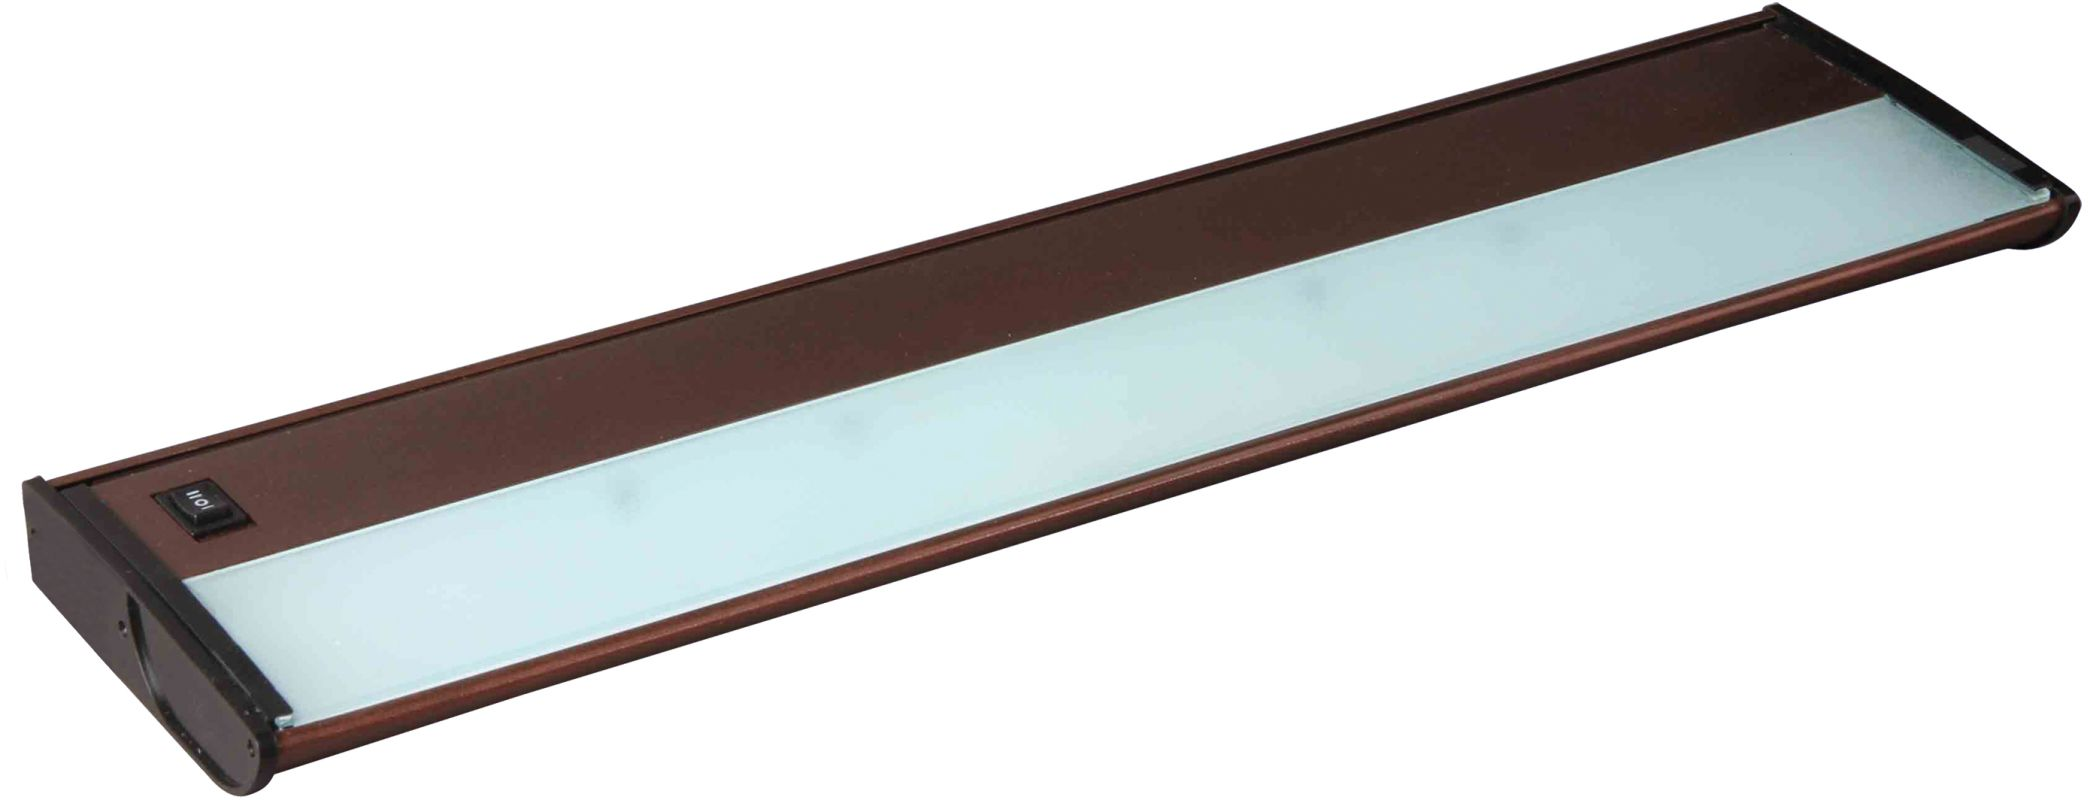 "Maxim 87832 21"" 3 Light Xenon Under Cabinet Light from the CounterMax"